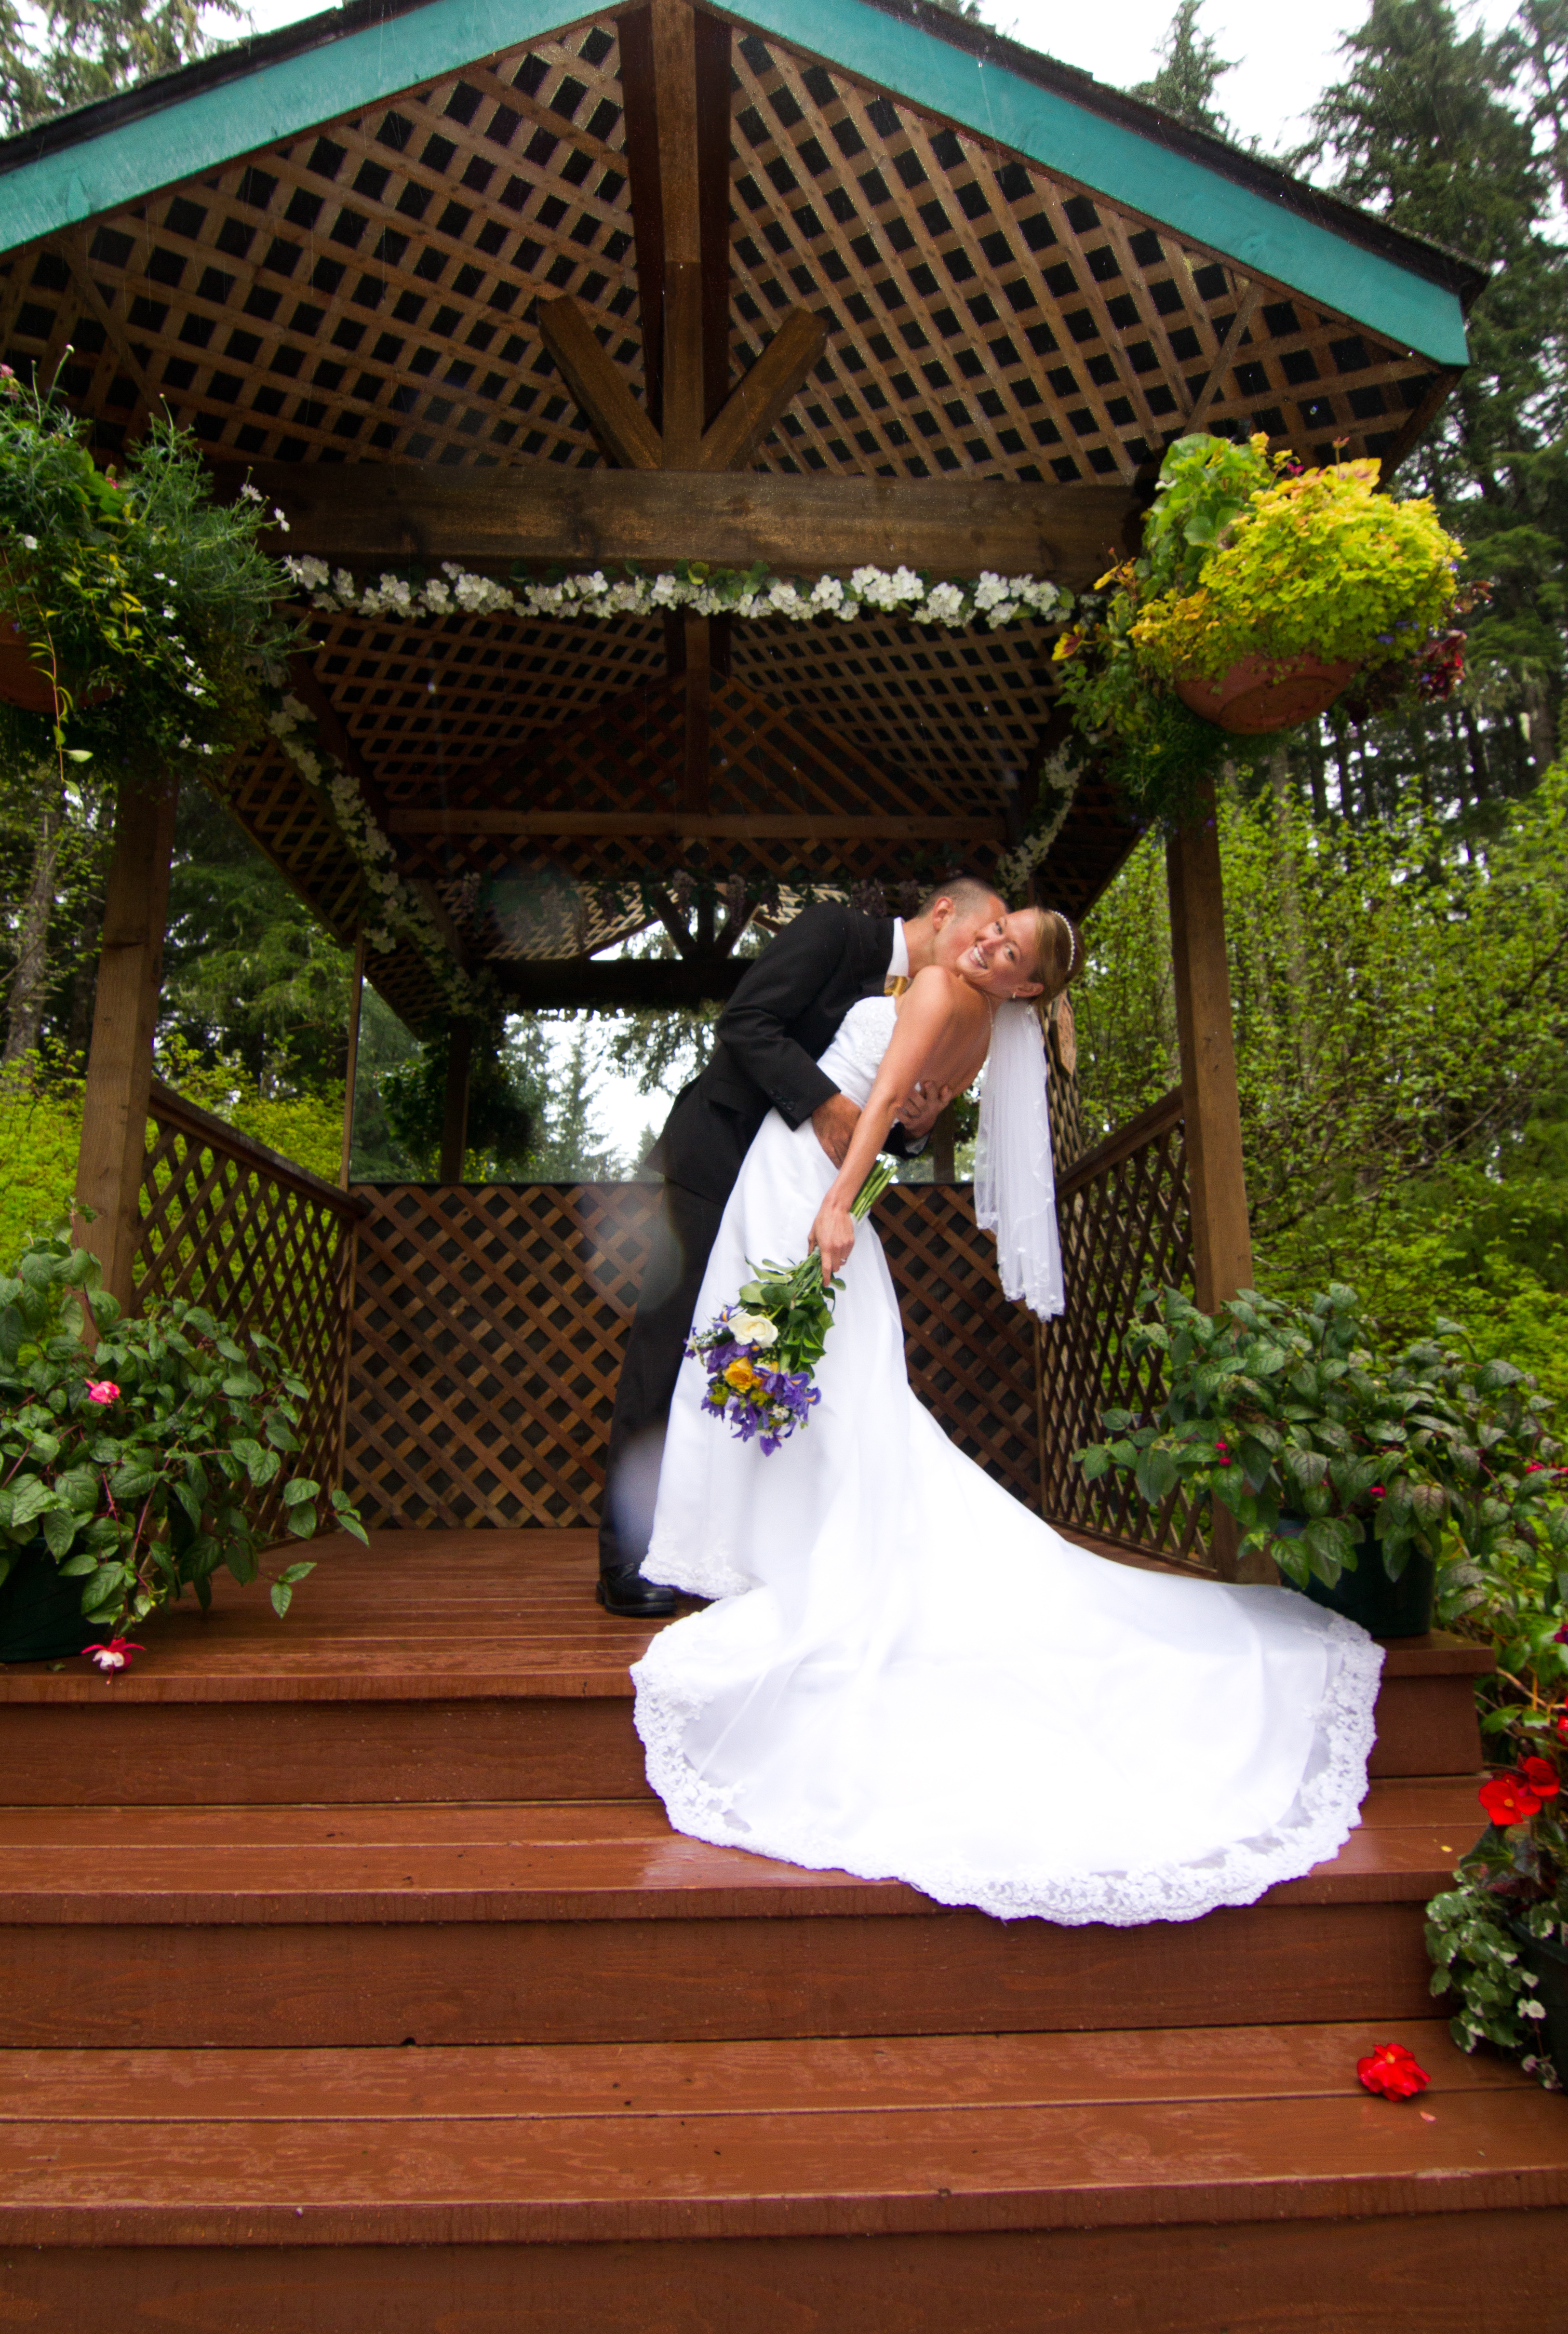 Photo of the first kiss at a wedding in the rain forest garden at Pearson's Pond Luxury Inn and Adventure Spa.